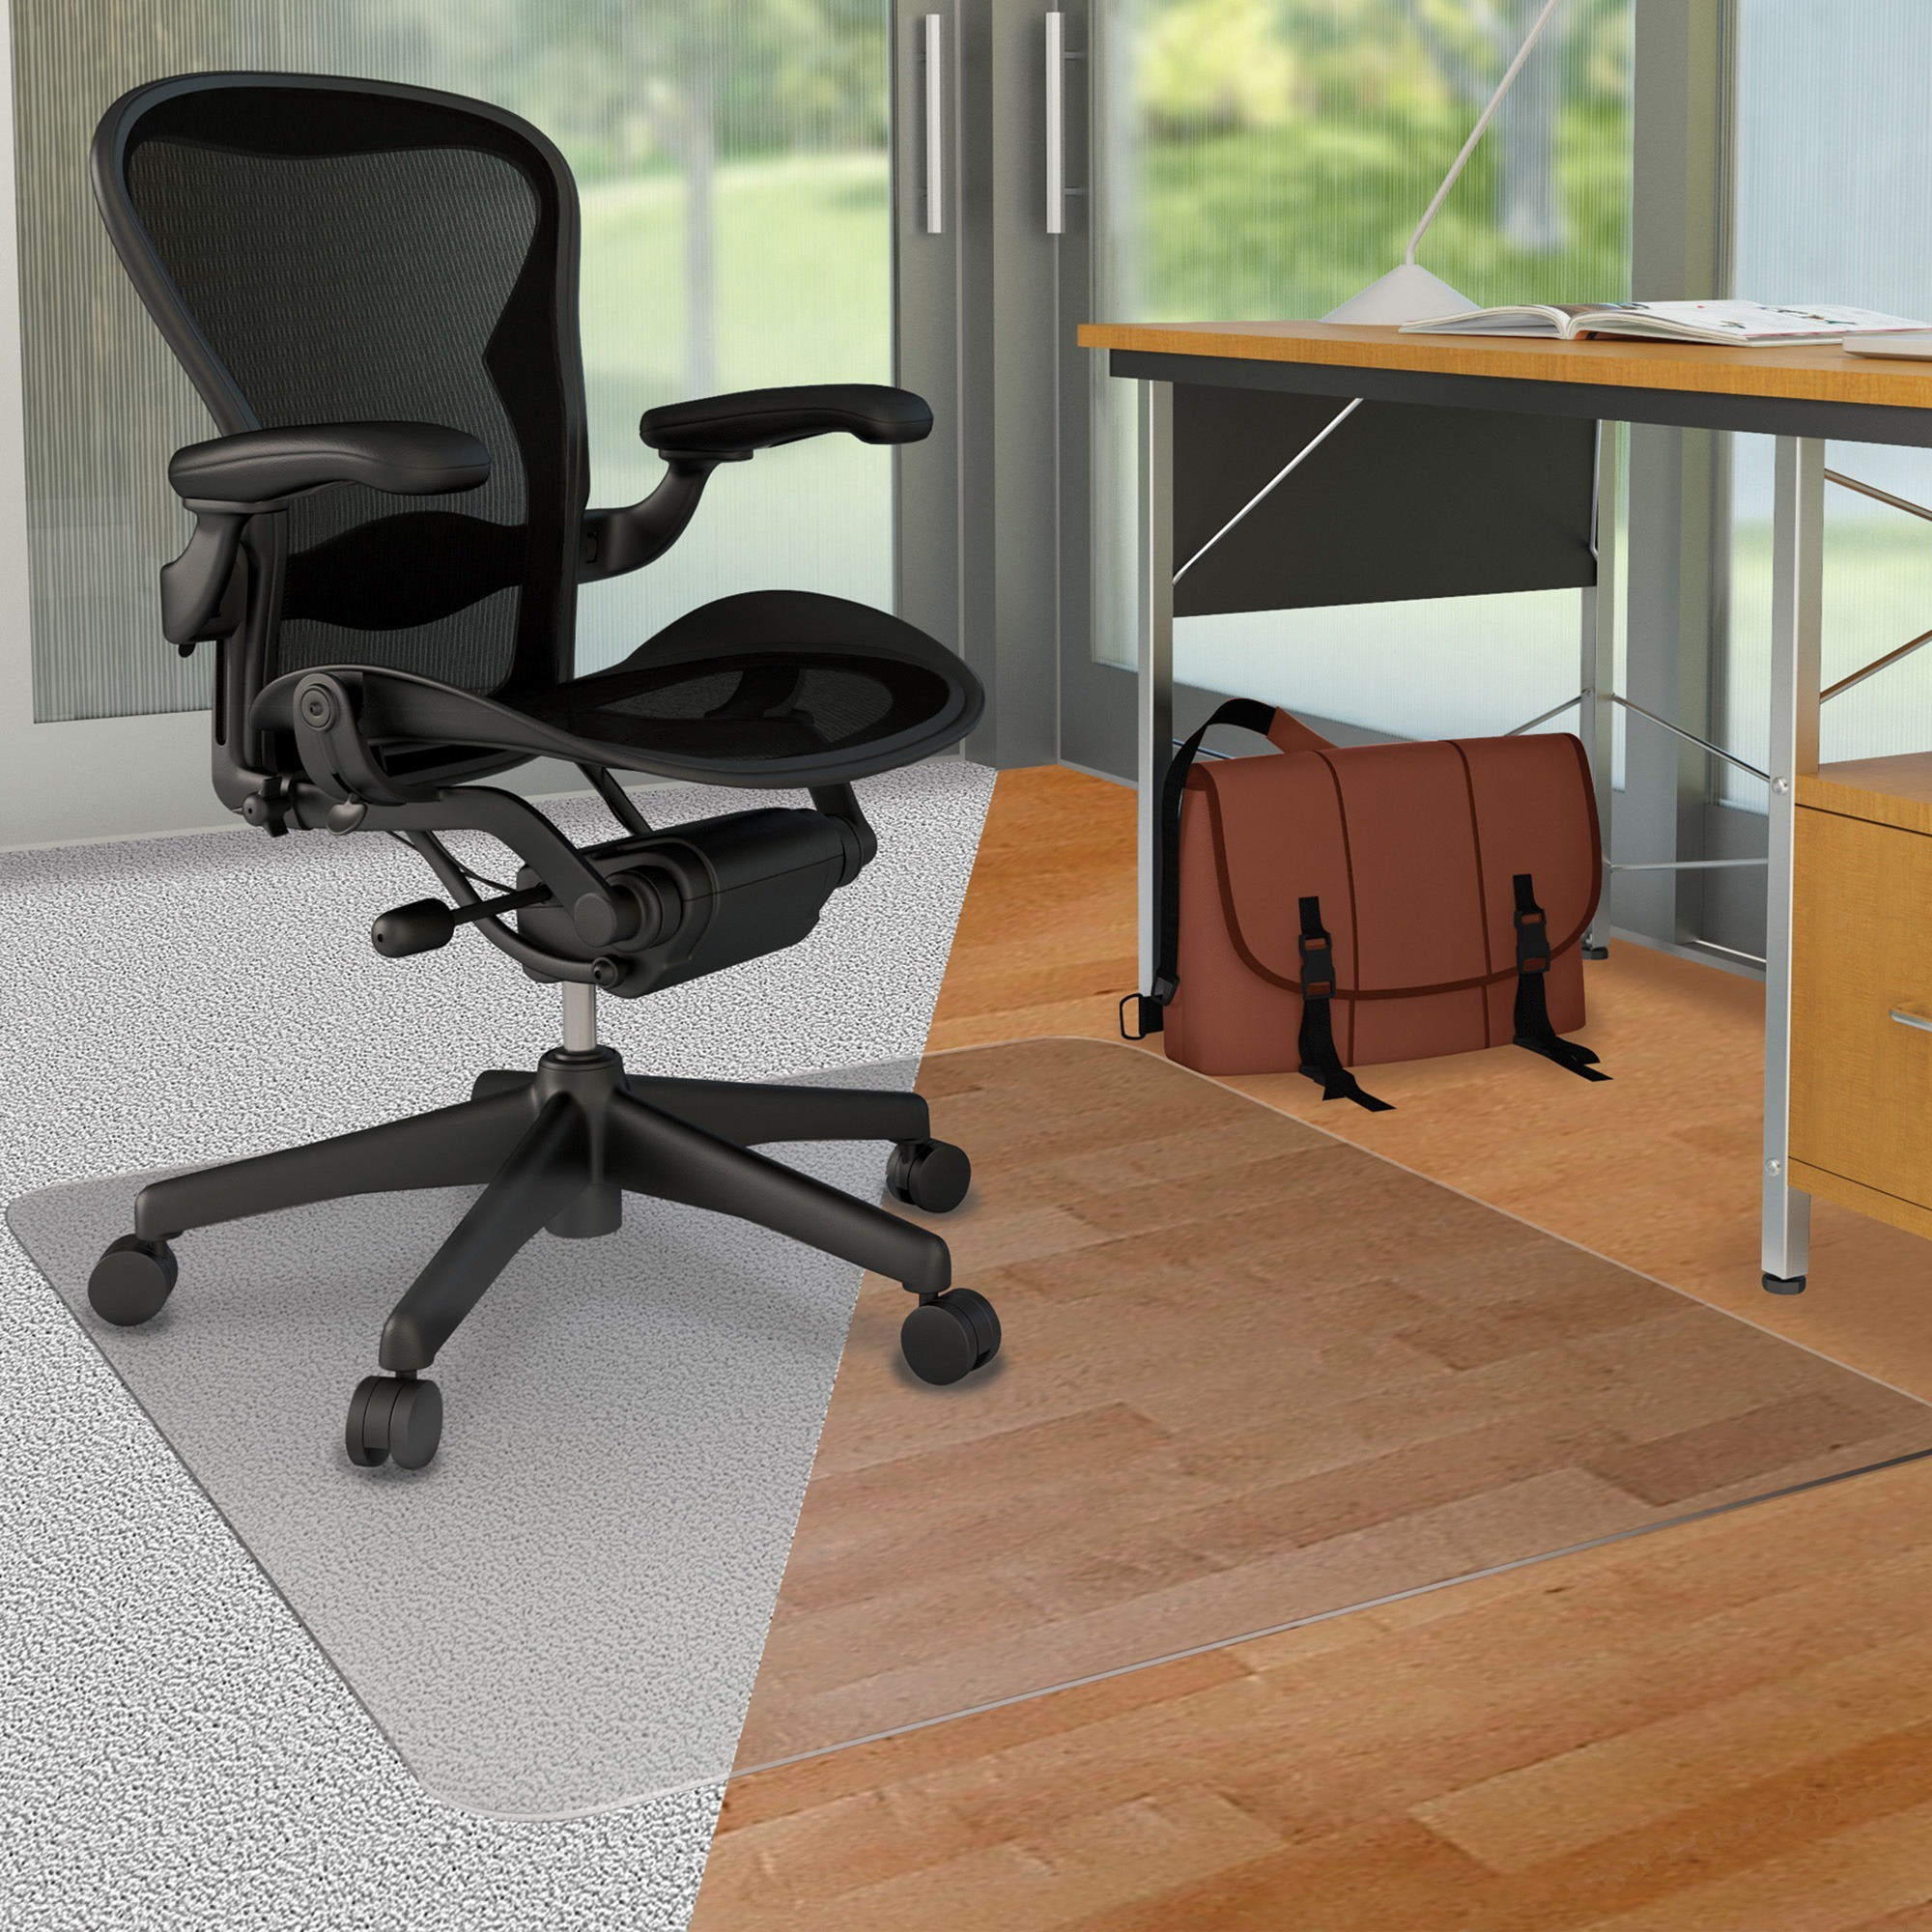 pretty with bamboo plastic ideas office transparent design also for desk carpet mats mat chair